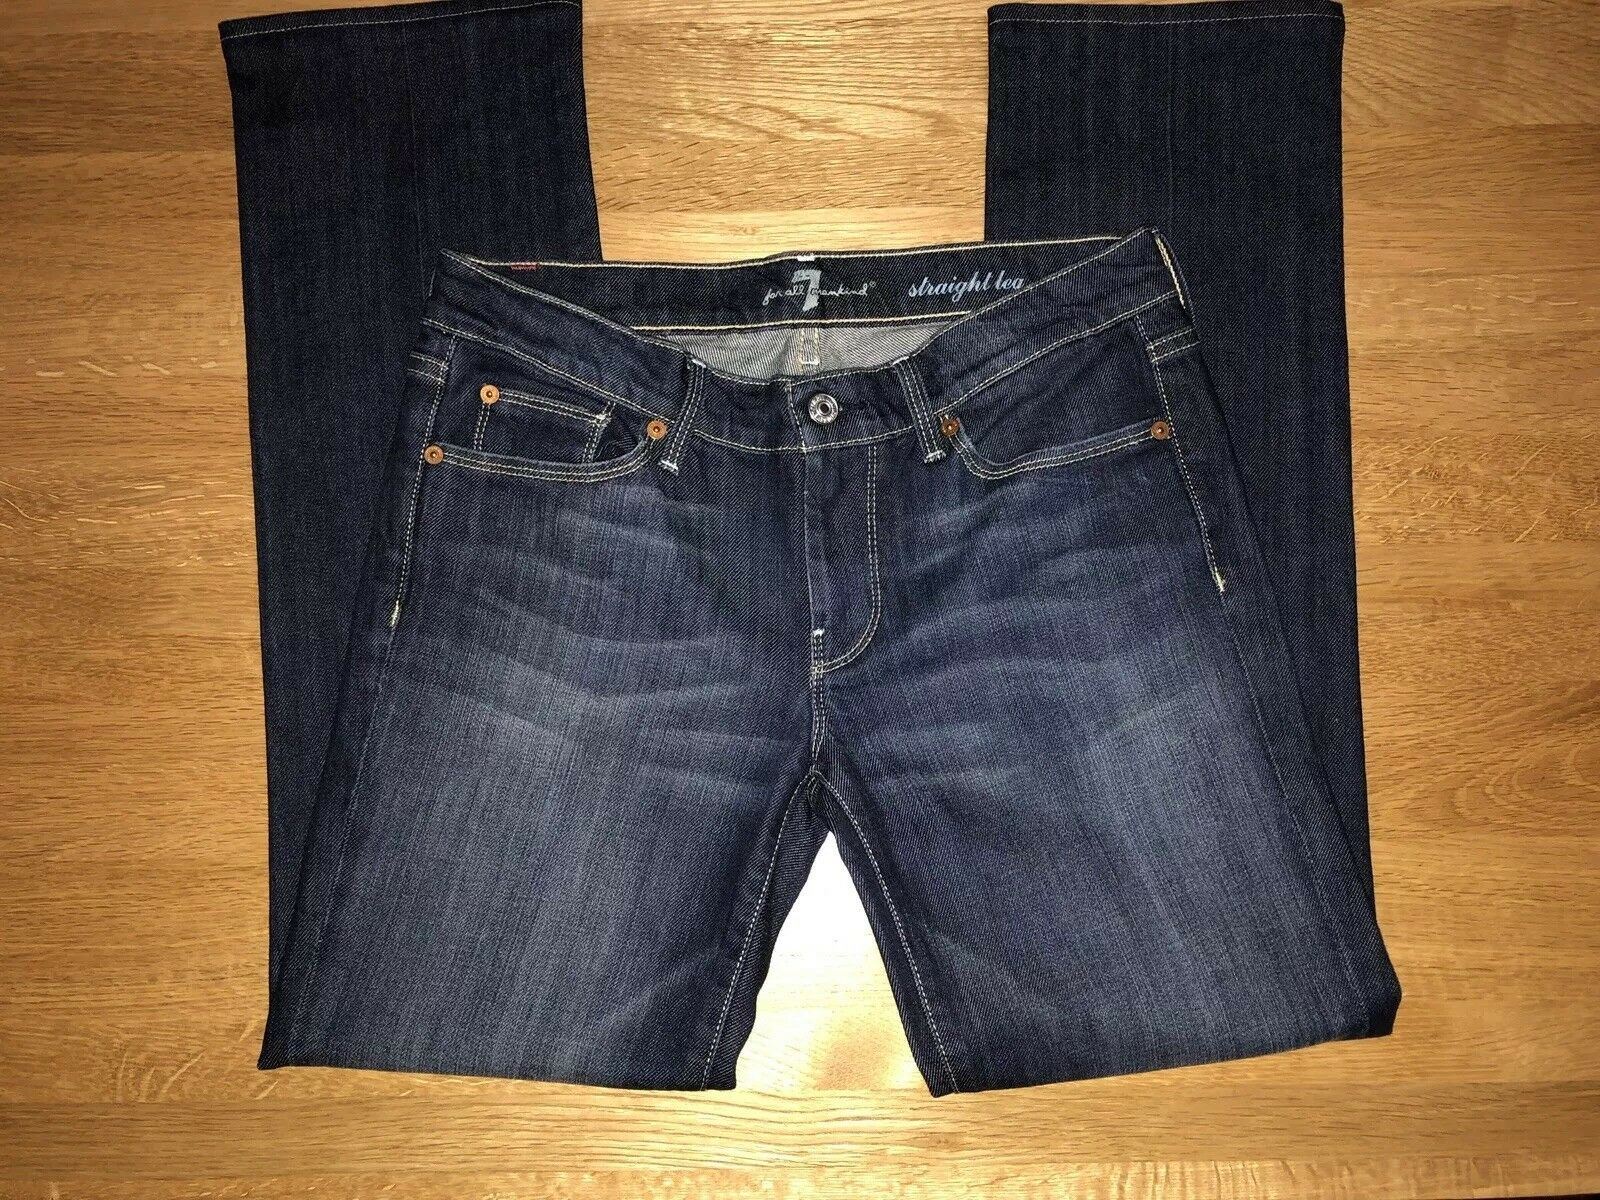 7 For All Mankind Women's Straight Leg Jeans Size-28 Worn Twice Great Condition